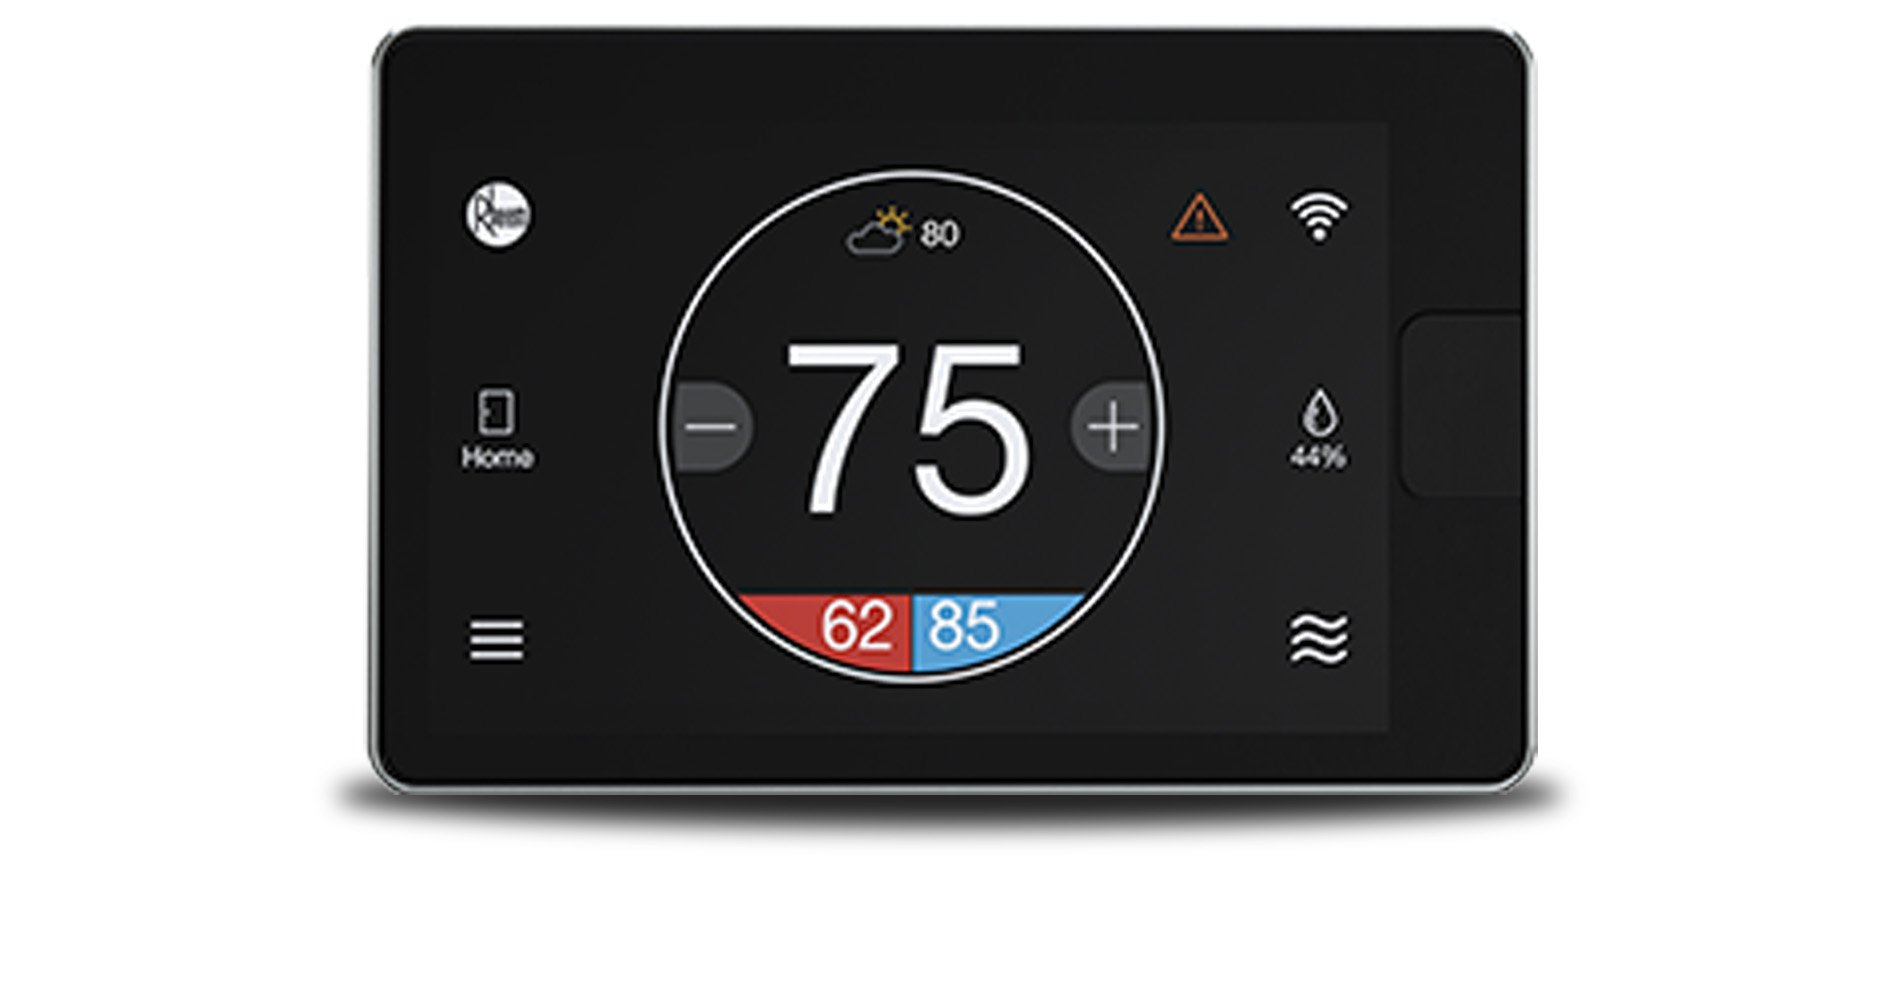 ASK ABOUT OUR WI-FI THERMOSTATS